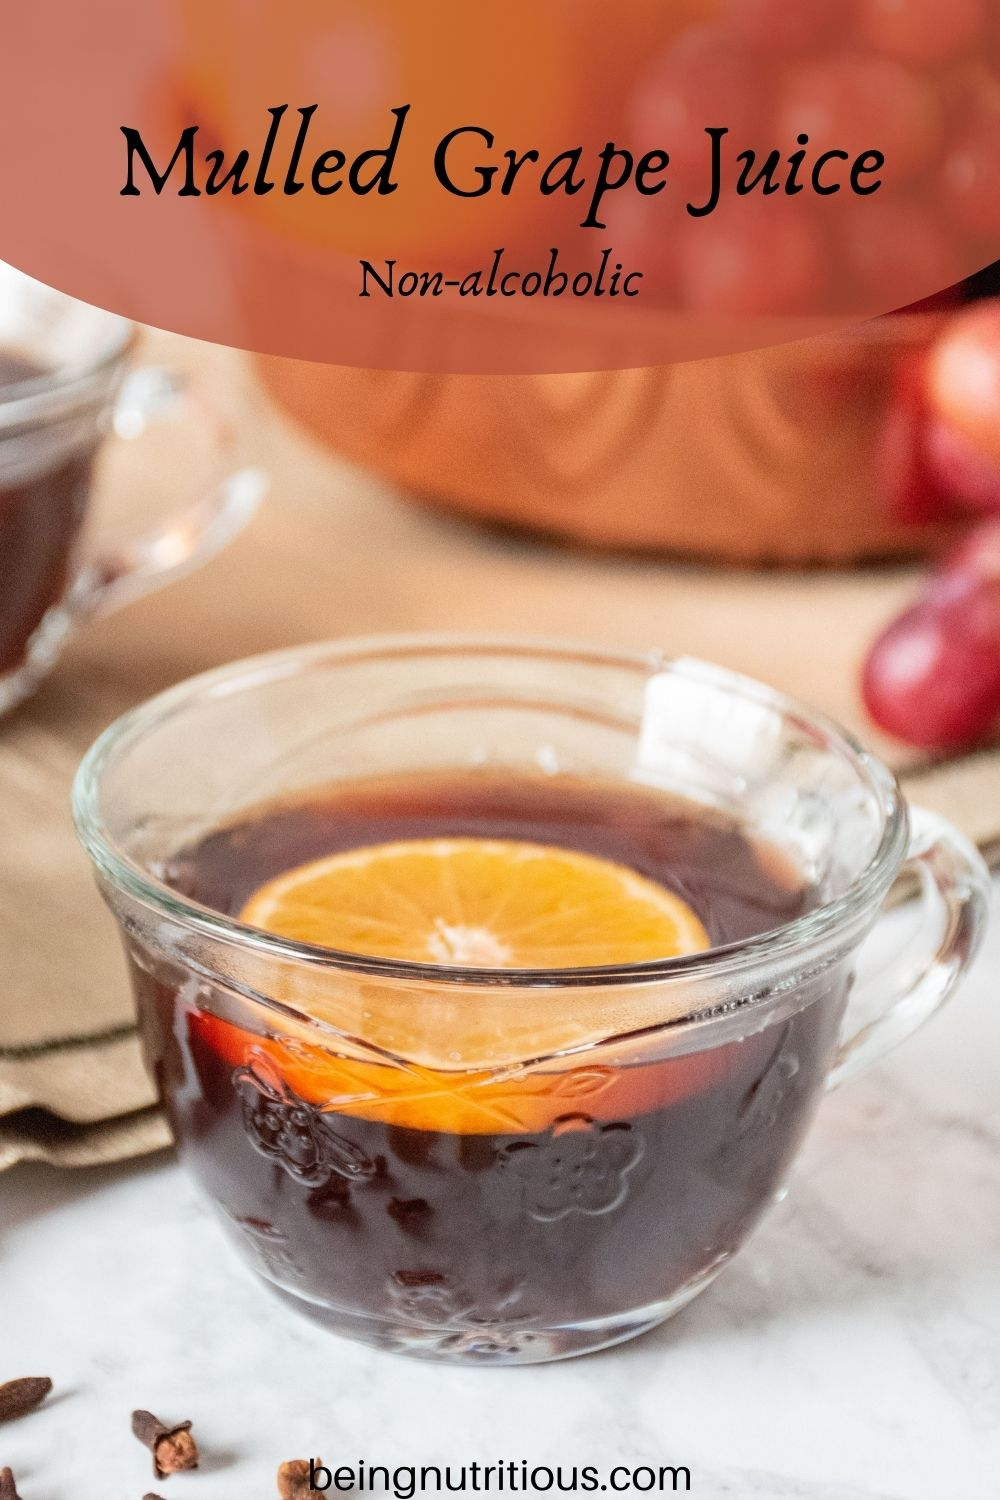 Close up of a small glass mug, filled with mulled grape juice, with an orange slice in it. Text overlay: mulled grape juice; non-alcoholic.